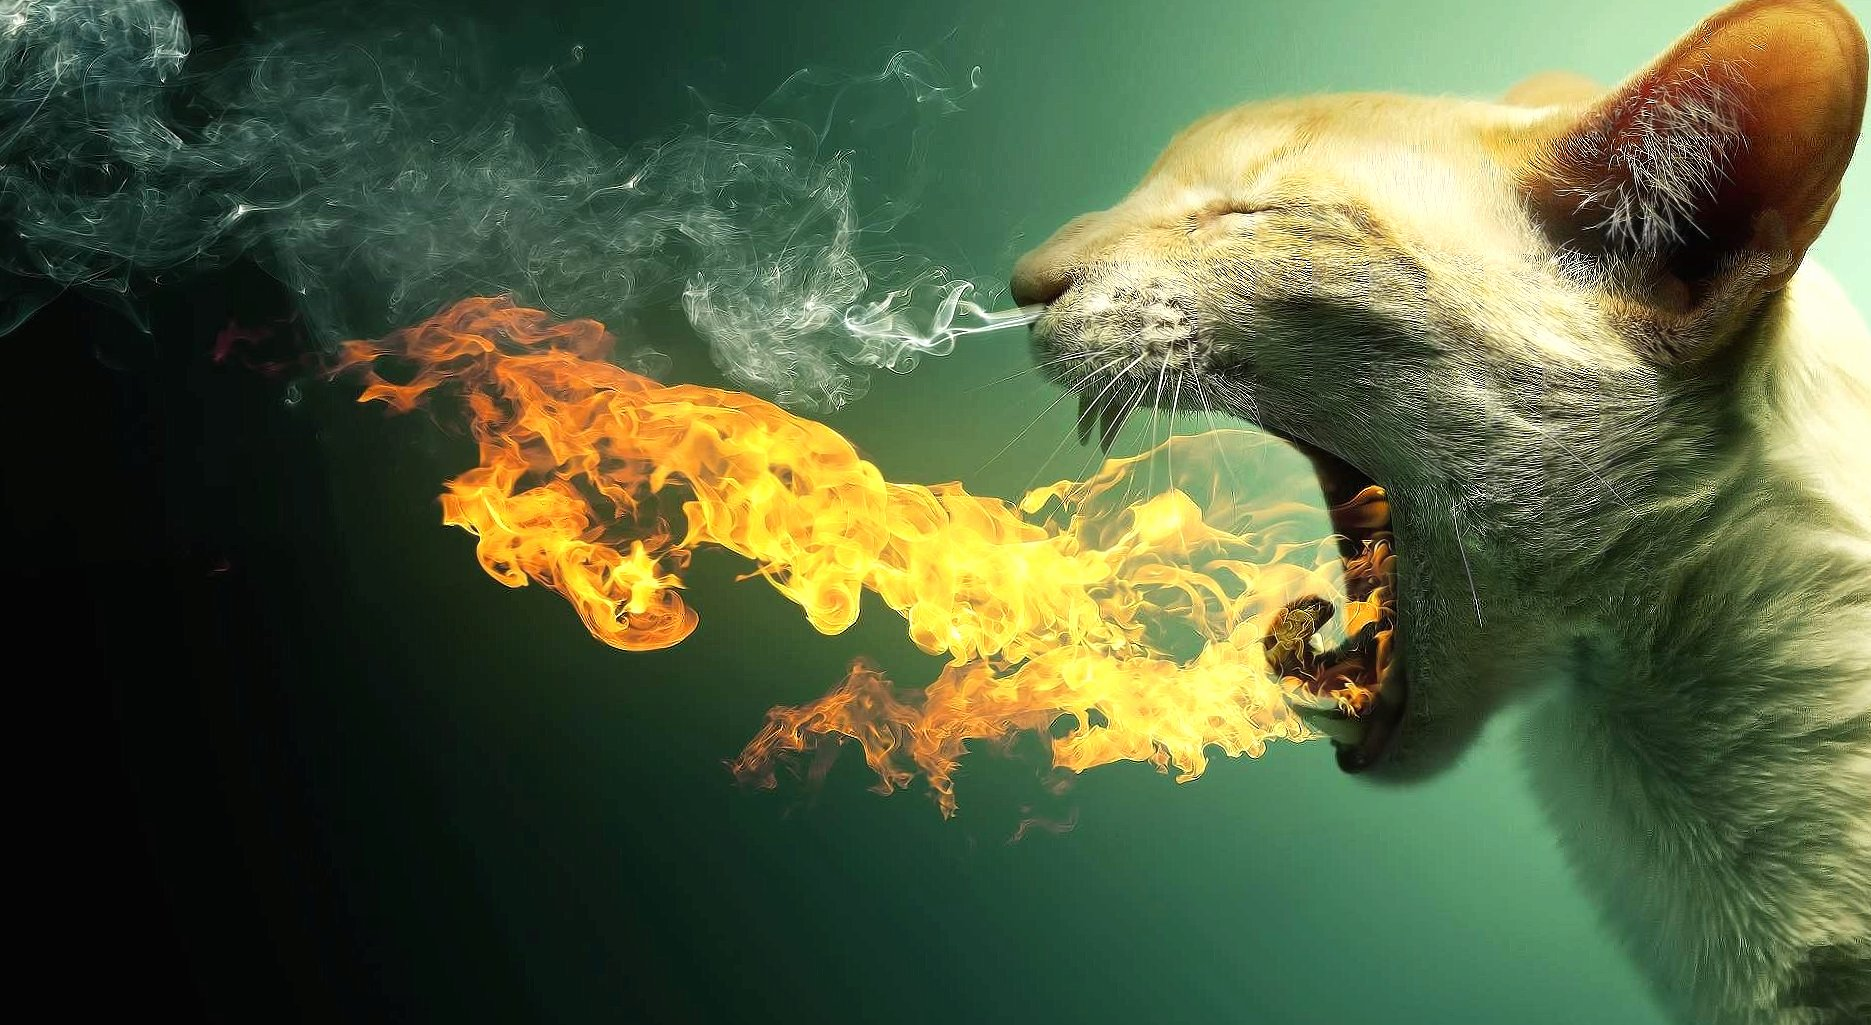 Funny flaming cat wallpapers HD quality